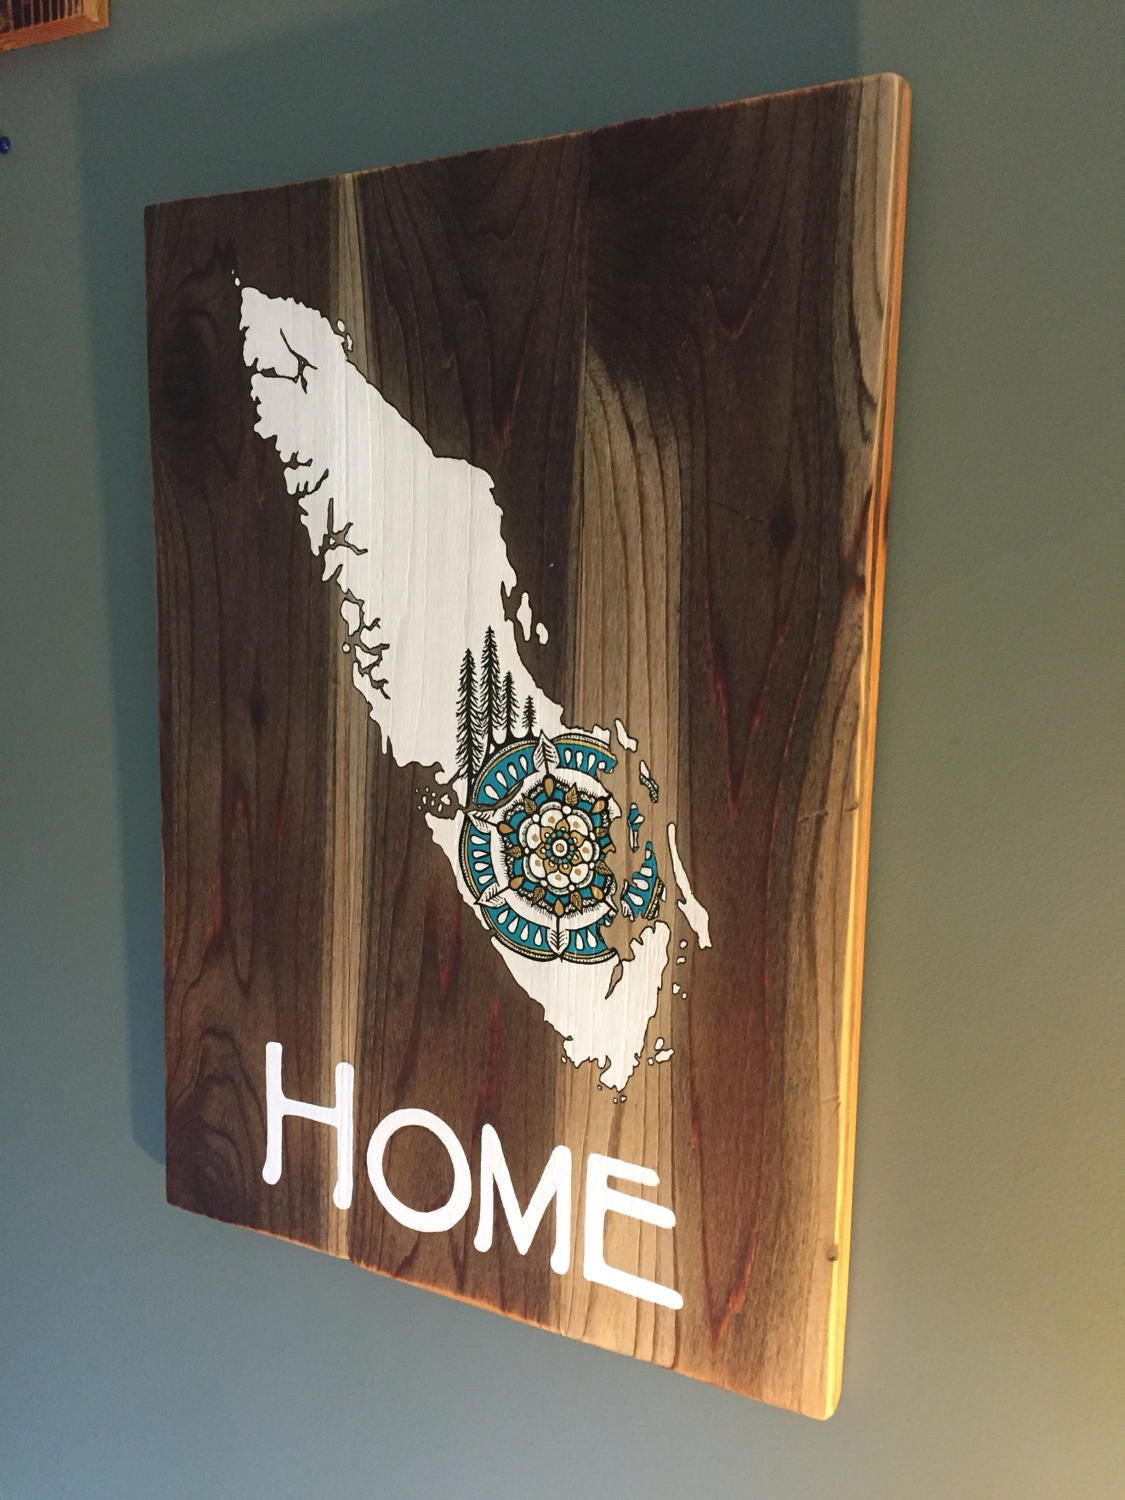 Sitka Mandala Home Vancouver Island Reclaimed Wood Map Rustic